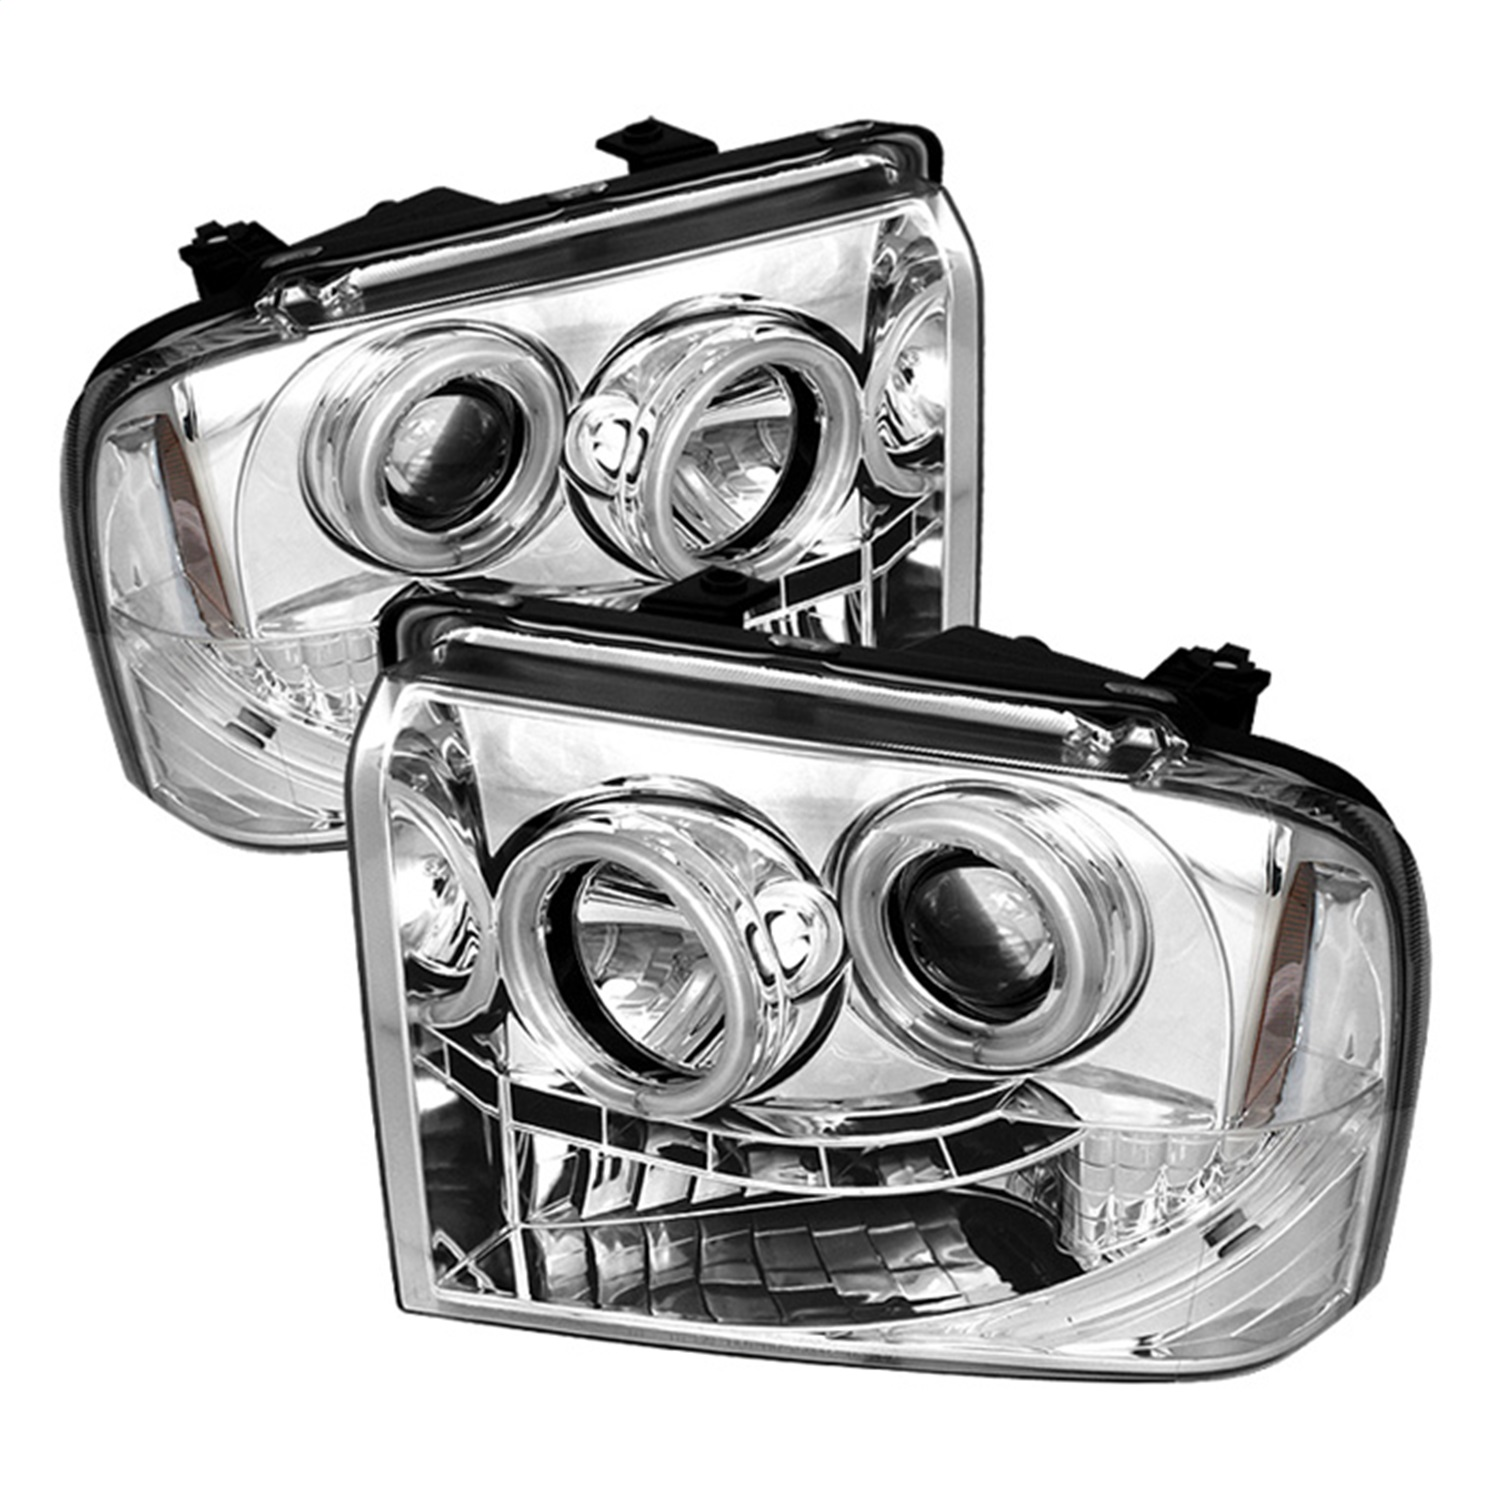 Spyder Auto 5030153 CCFL LED Projector Headlights